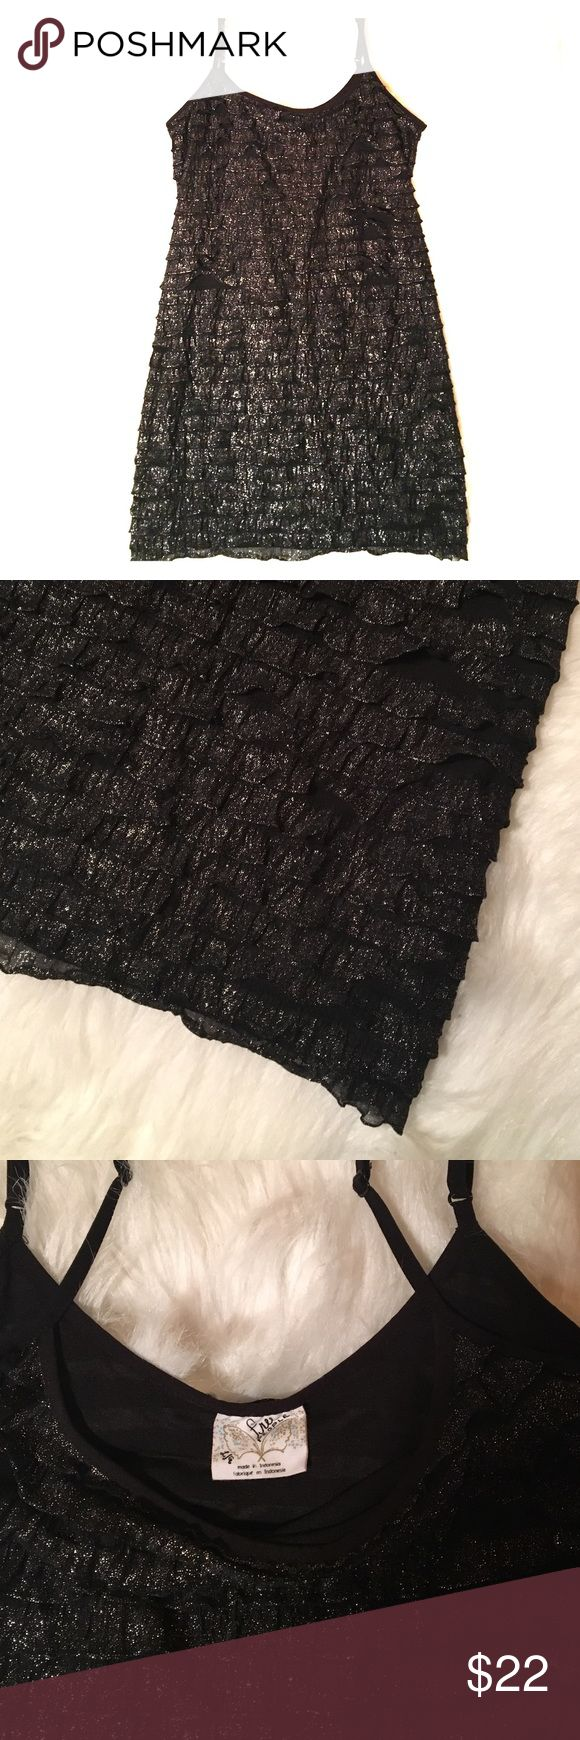 """Free People Bodycon Black Shimmer Dress Ruffle L Free People Bodycon Black Shimmer Dress Ruffle Large. Shimmery metallic silver on black. See through material under ruffles. 93% polyester 7% spandex. Spaghetti straps. Multi use. Tank, mini dress, neglige... so sexy. Measures approx 14"""" underarm to underarm, 28 1/2"""" long. Adjustable straps. Great condition. Free People Dresses Mini"""